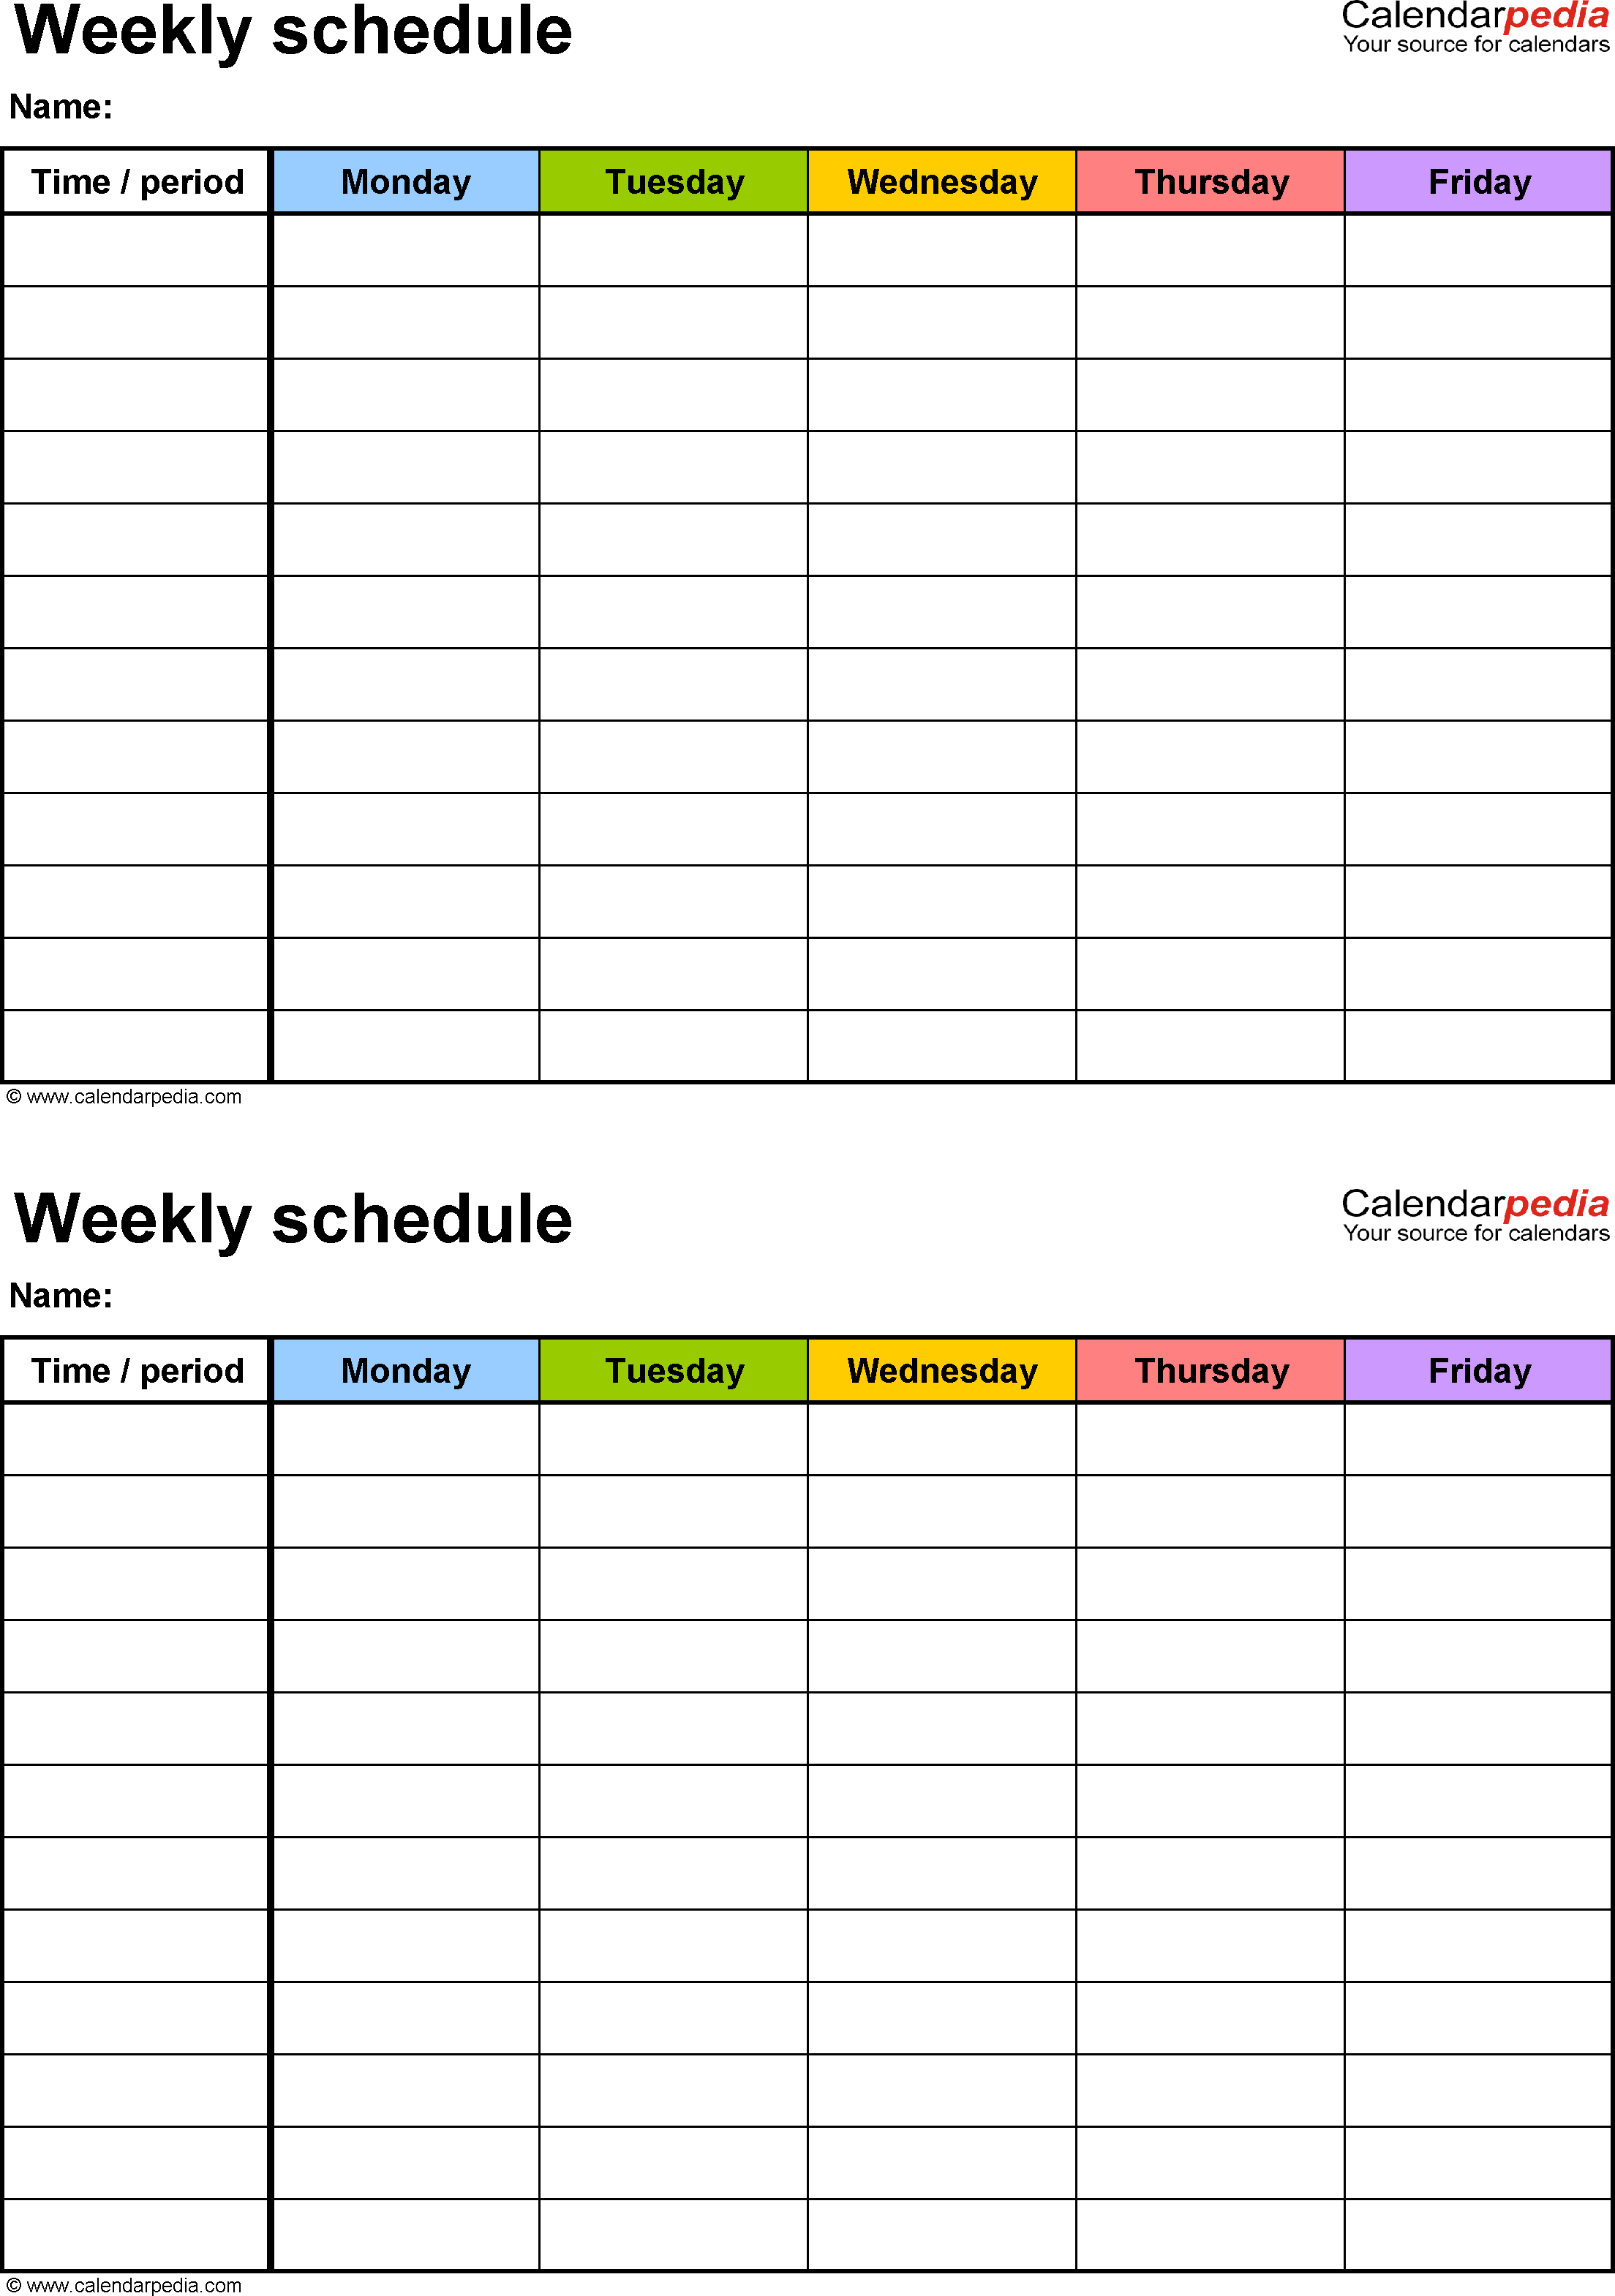 Weekly Schedule Template For Pdf Version 3 2 Schedules On One